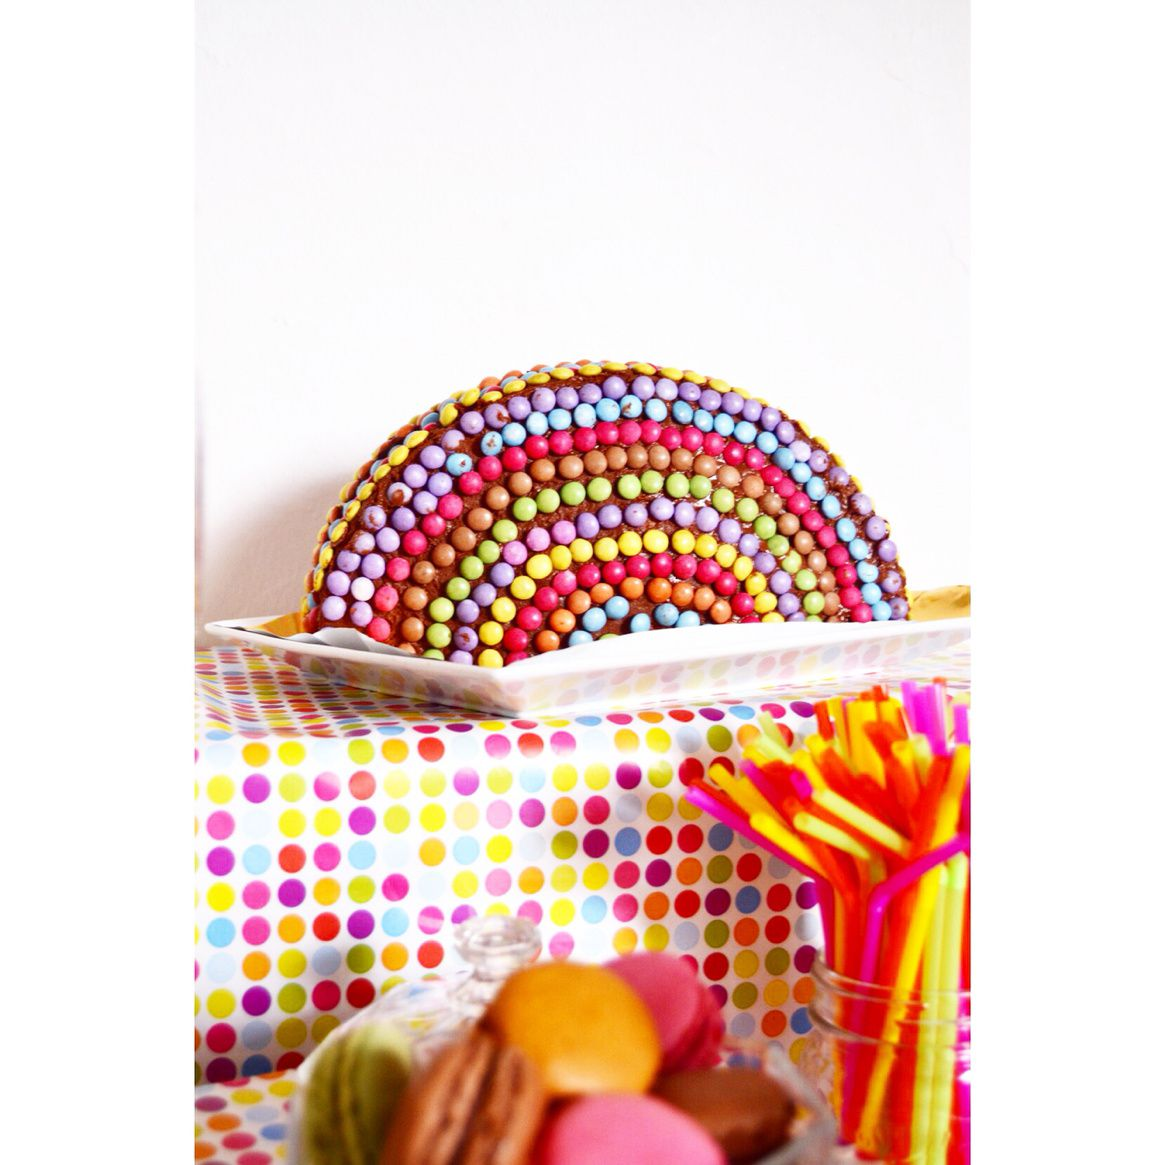 Candy Table &quot&#x3B;Vive les Couleurs&quot&#x3B;